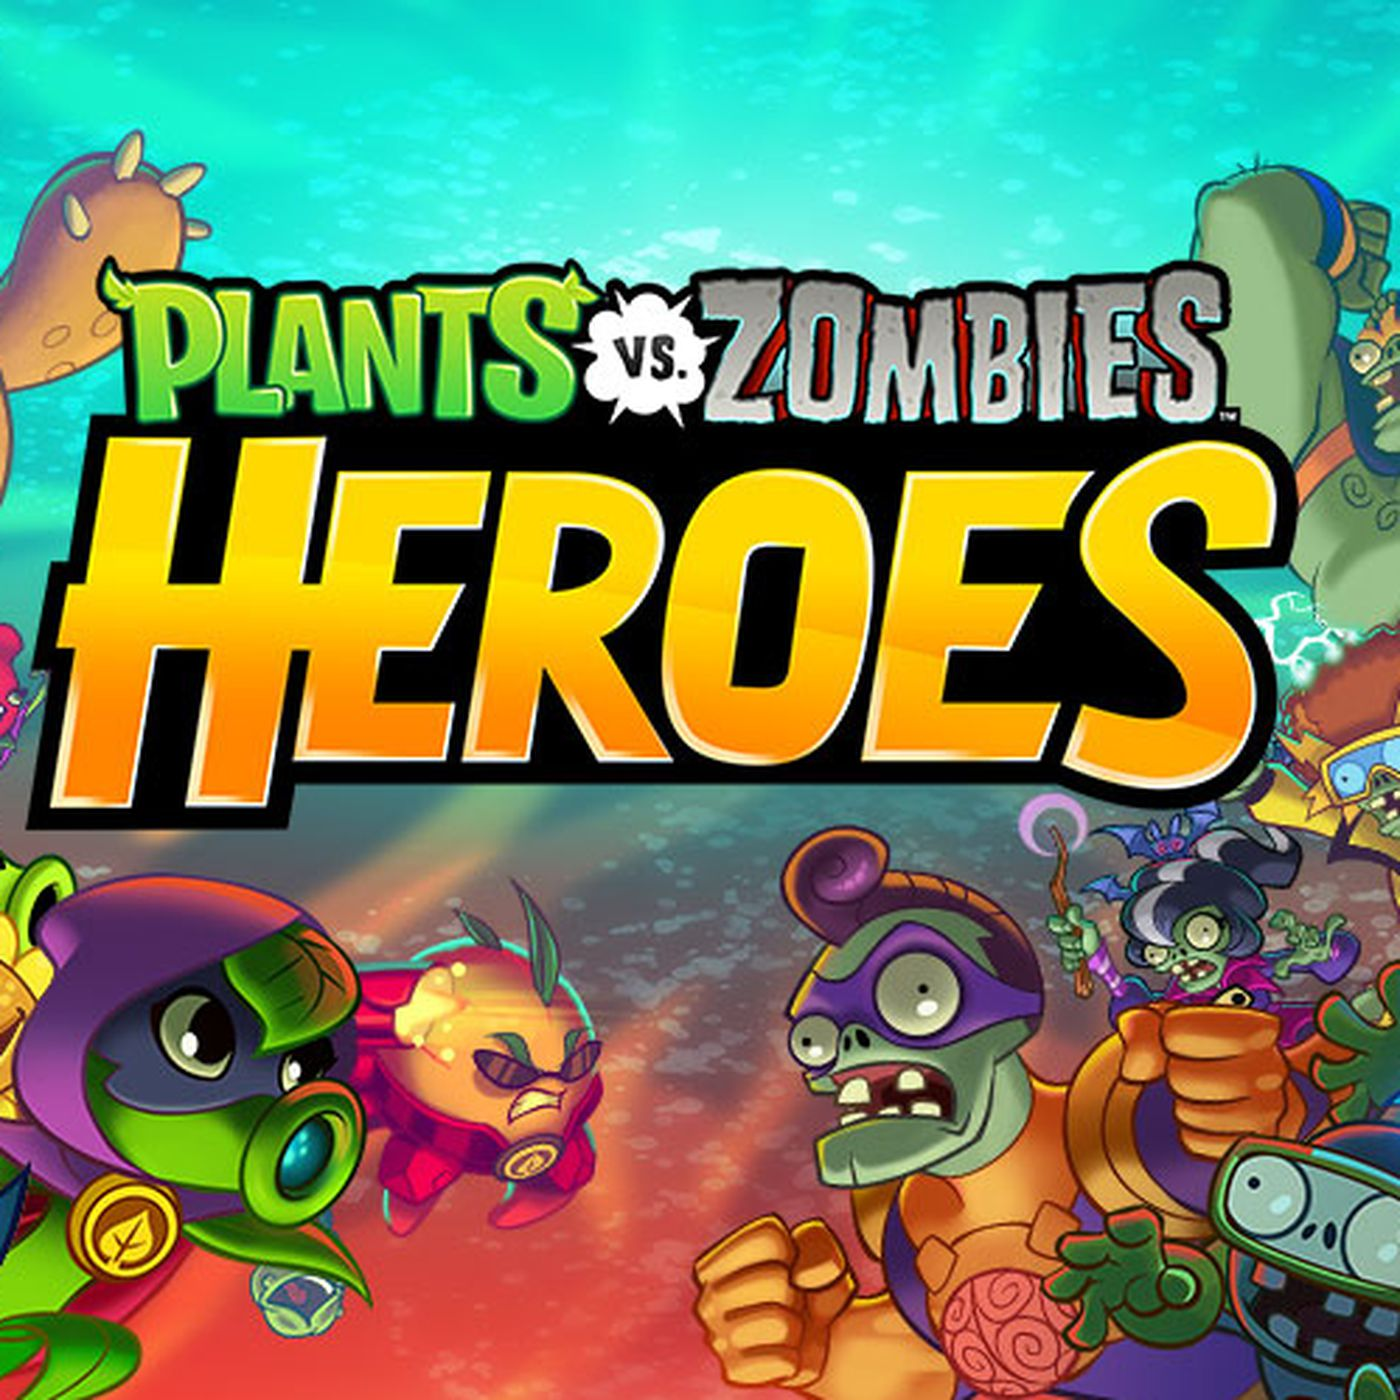 The next Plants vs  Zombies game is all about collectible